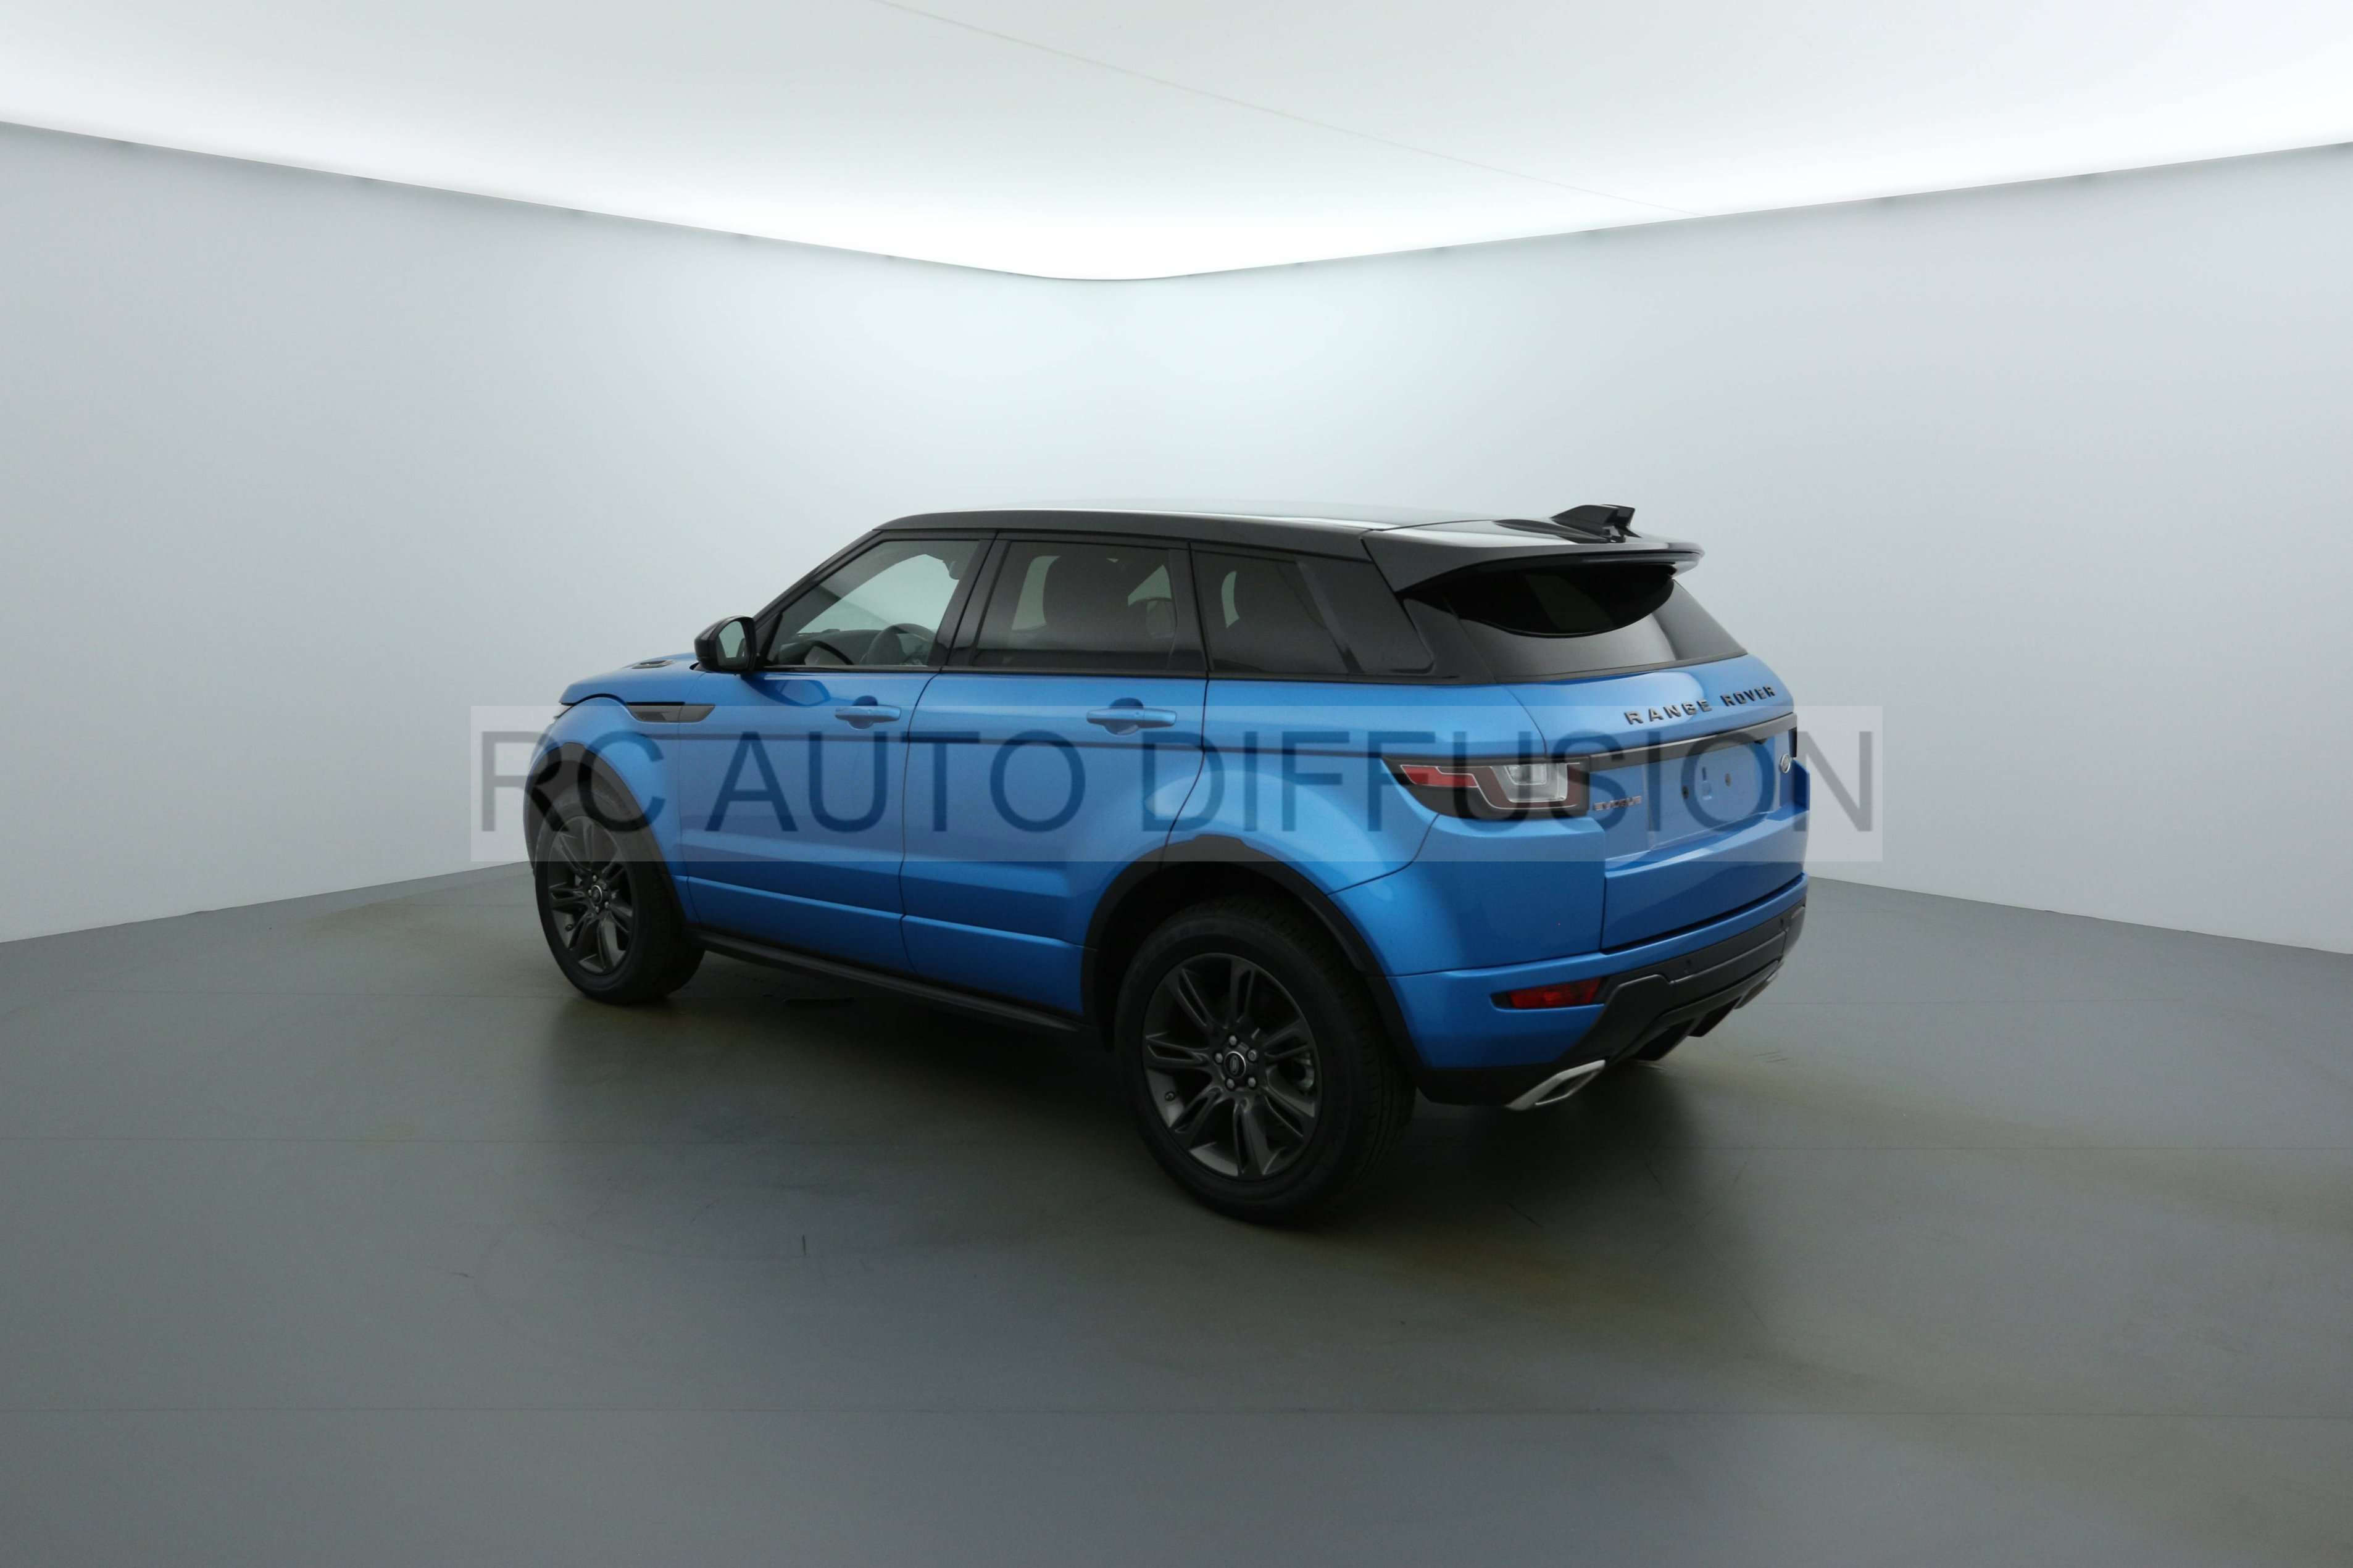 land rover range rover evoque echirolles 145521 rc auto diffusion. Black Bedroom Furniture Sets. Home Design Ideas